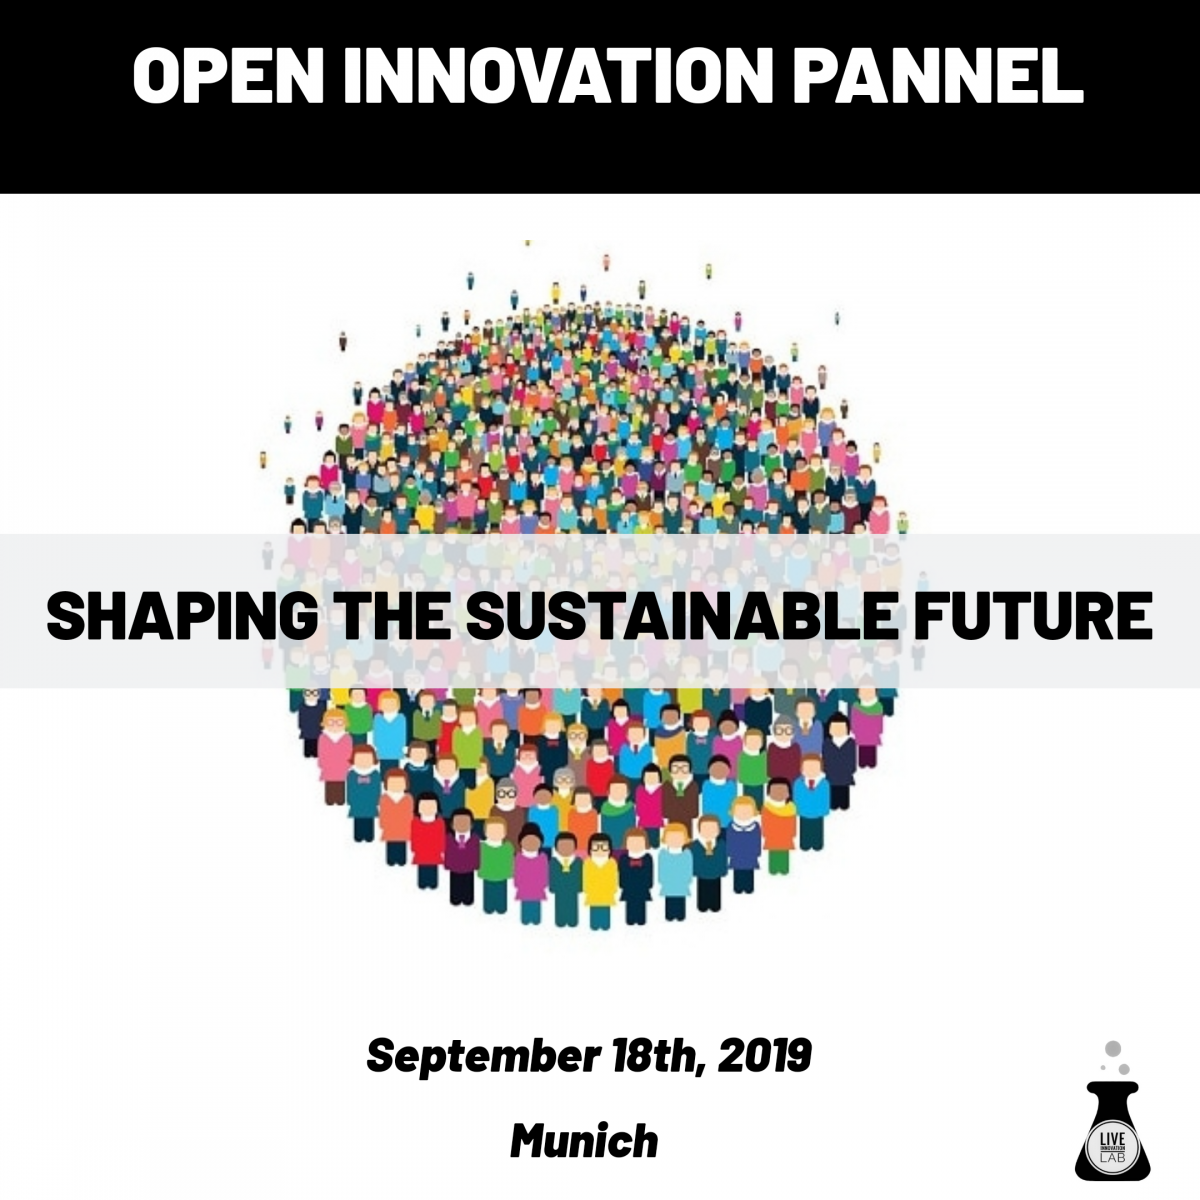 Open Innovation Panel - Shaping the Sustainable Future